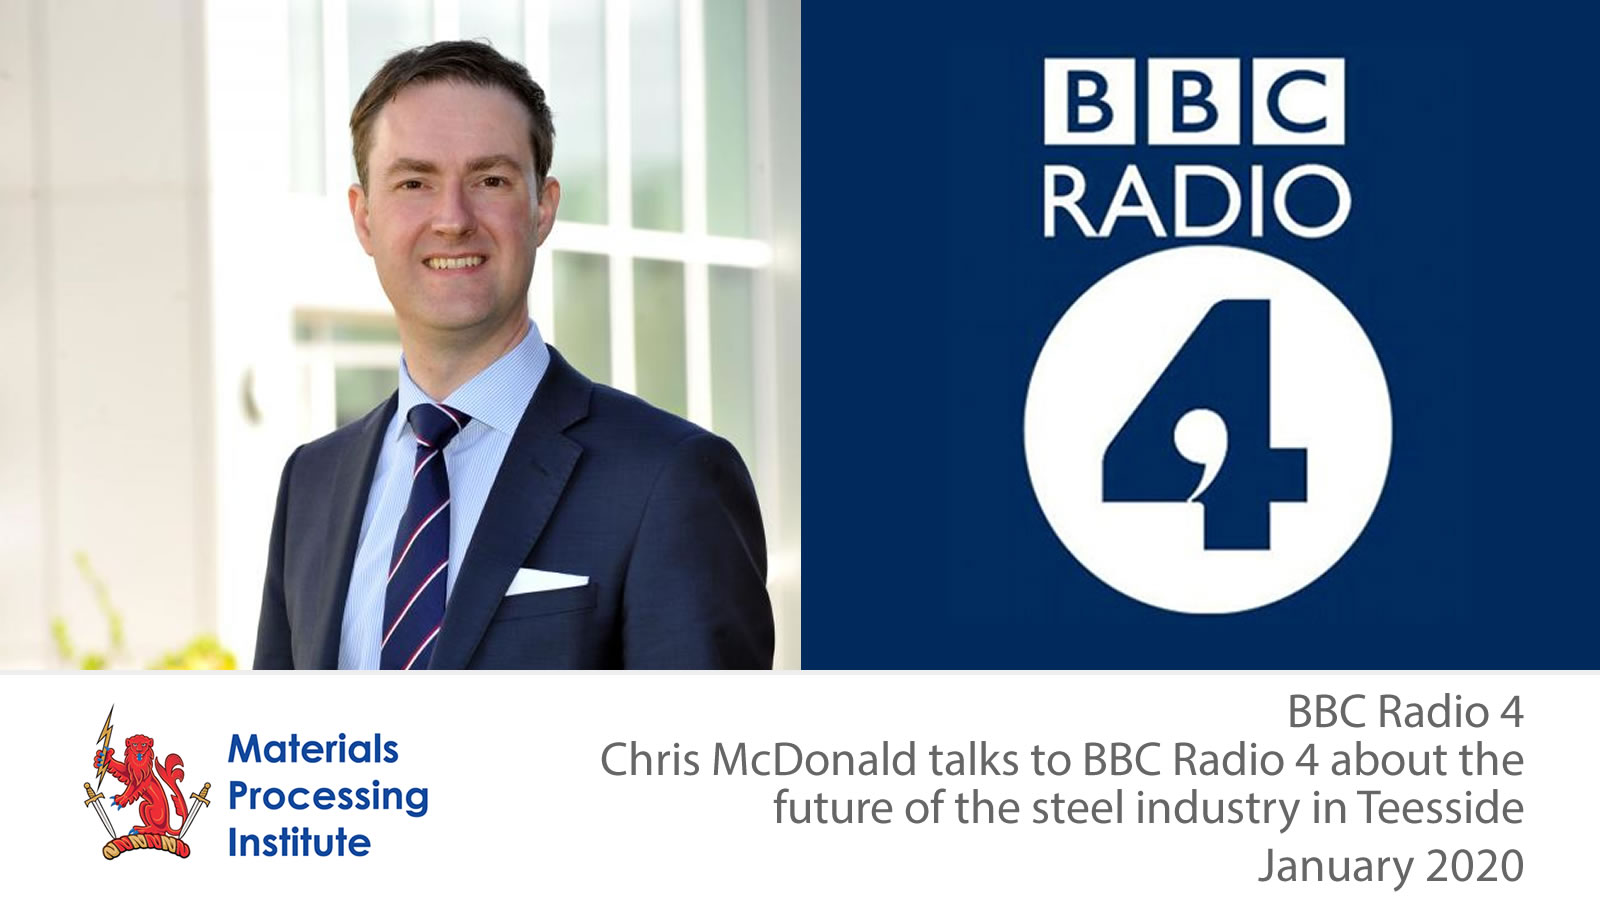 Chris McDonald of the Materials Processing Institute talks to BBC Radio 4 about the future of the steel industry in Teesside - January 2020